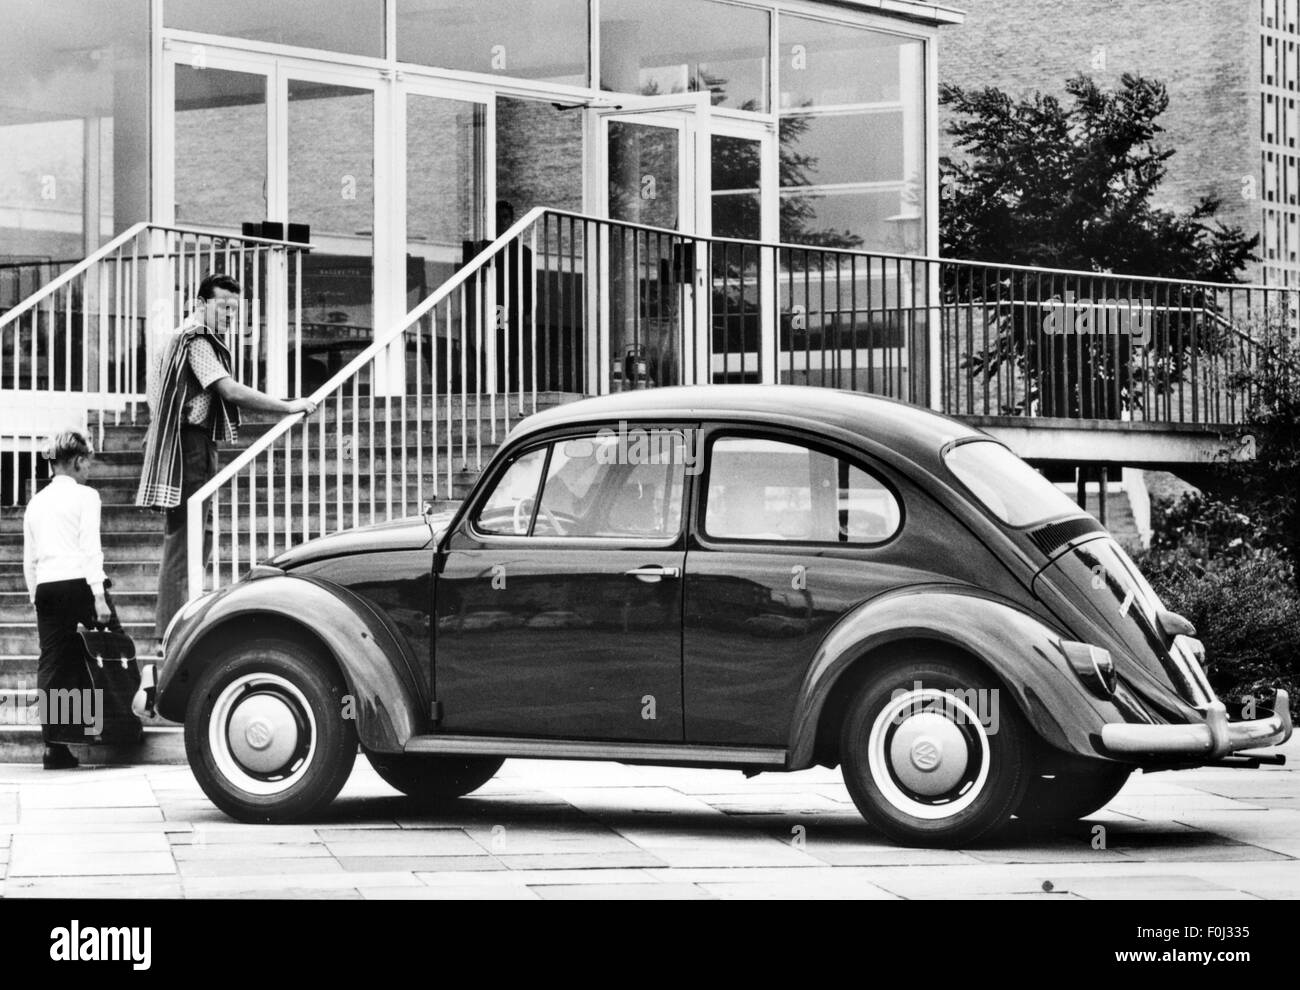 transport / transportation, car, vehicle variants, Volkswagen, VW 1200 beetle, circa 1970, Additional-Rights-Clearences - Stock Image